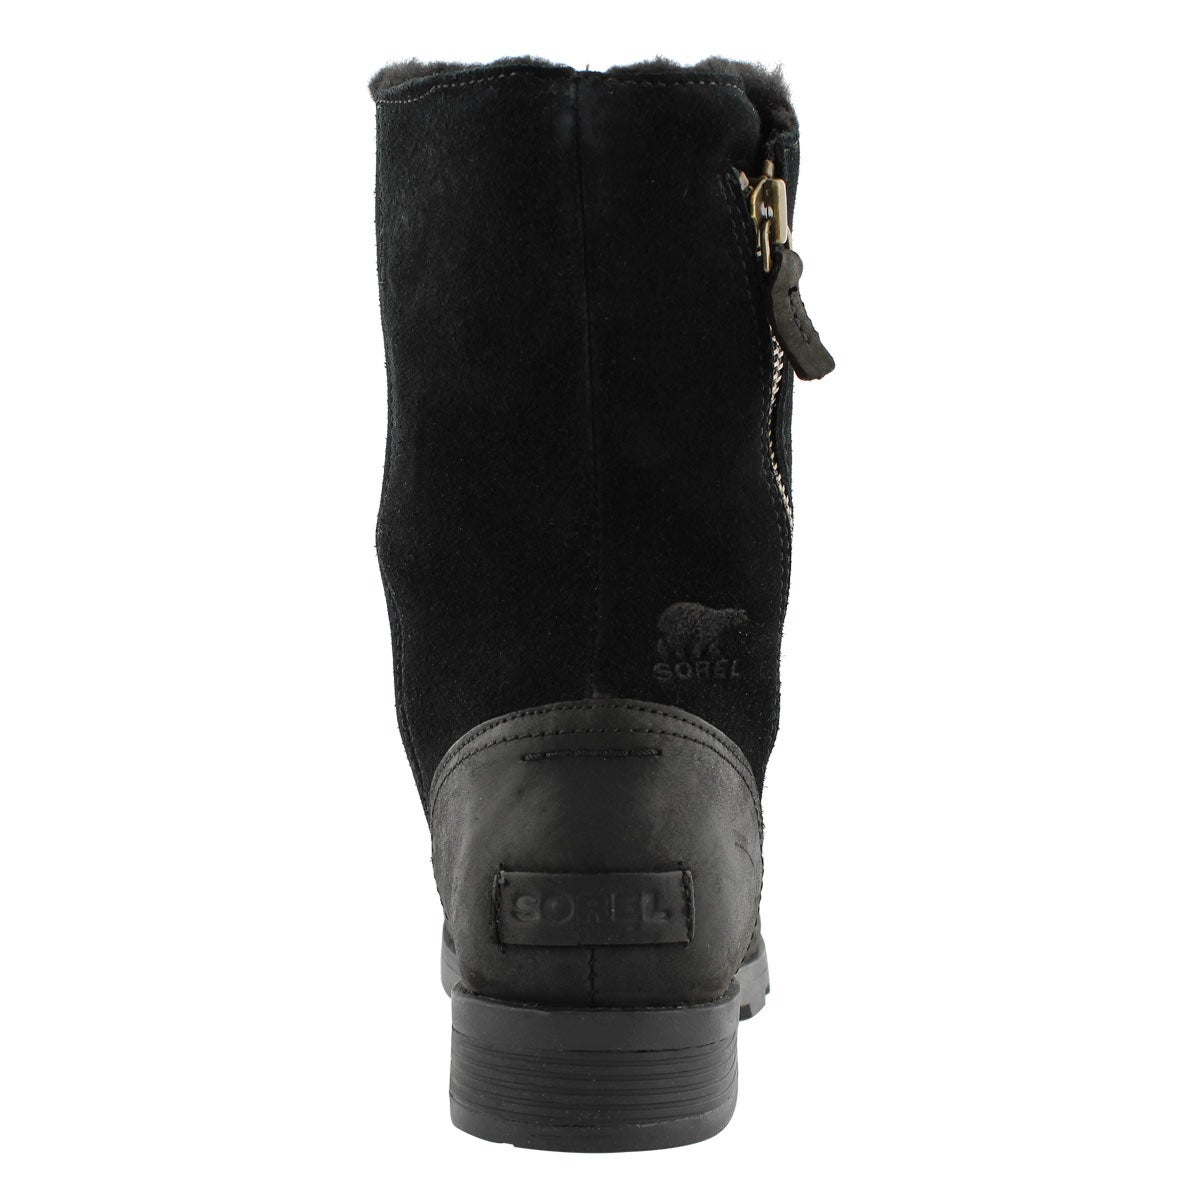 Lds Emelie Foldover blk casual boot